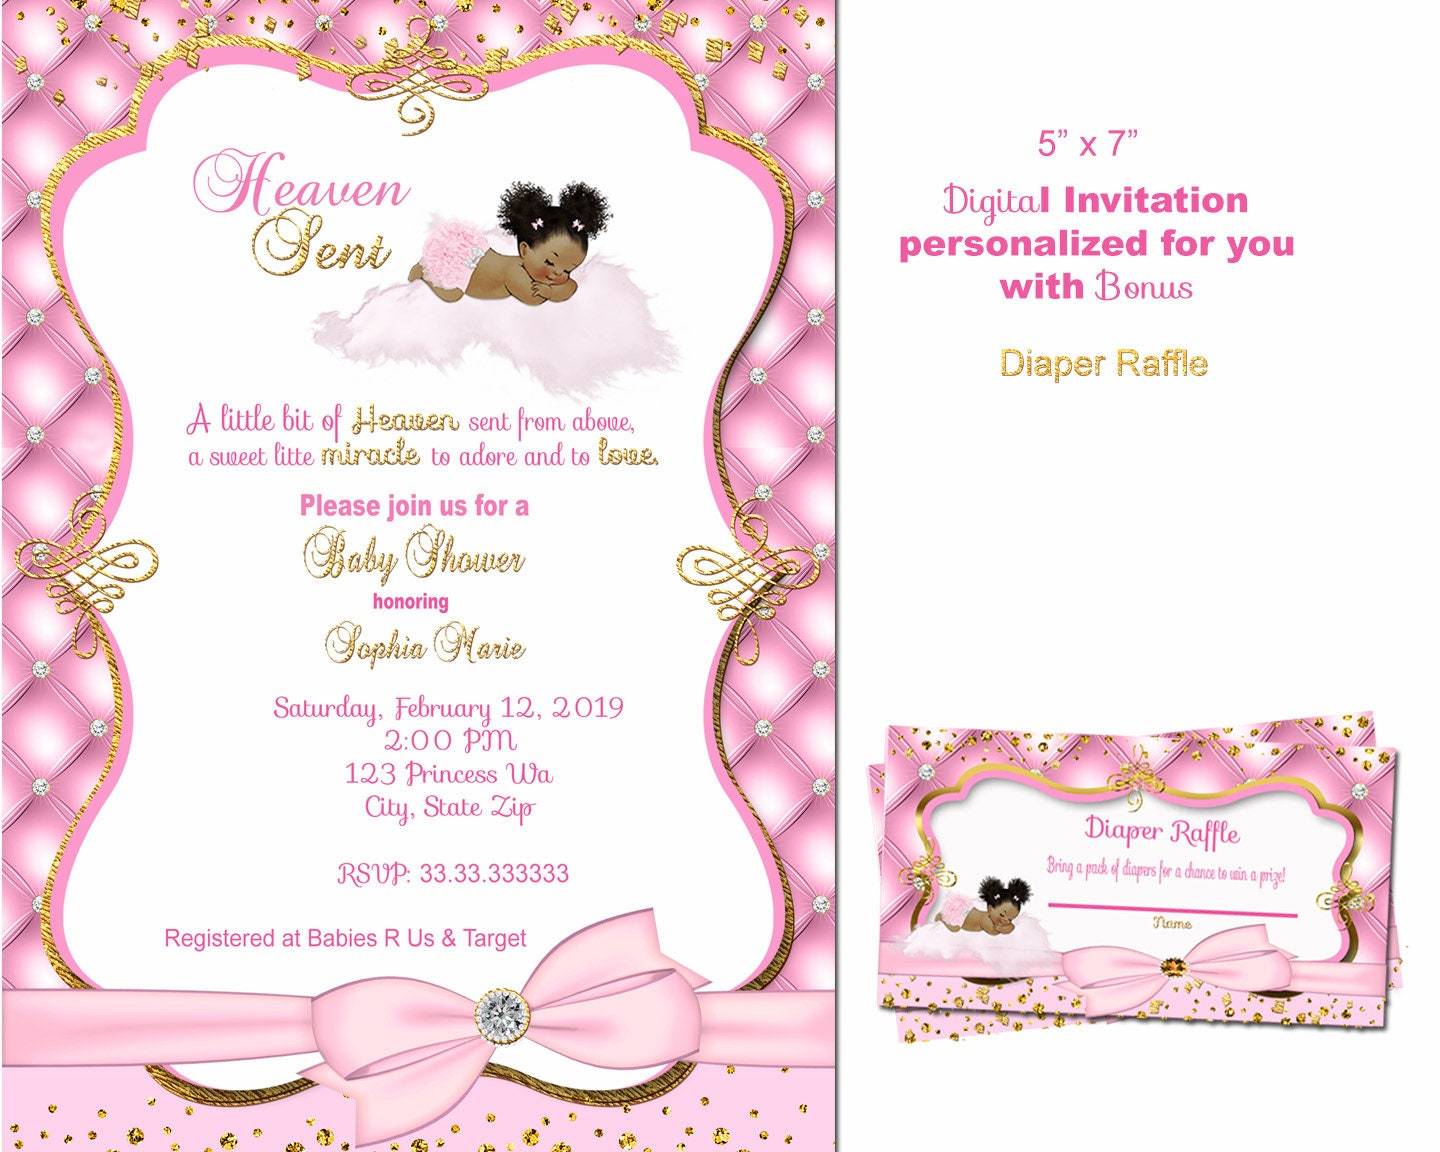 Little Angel Baby Shower invitation Heaven sent invitation Royal Baby  shower invitation tickled pink thank you sprinkle African American